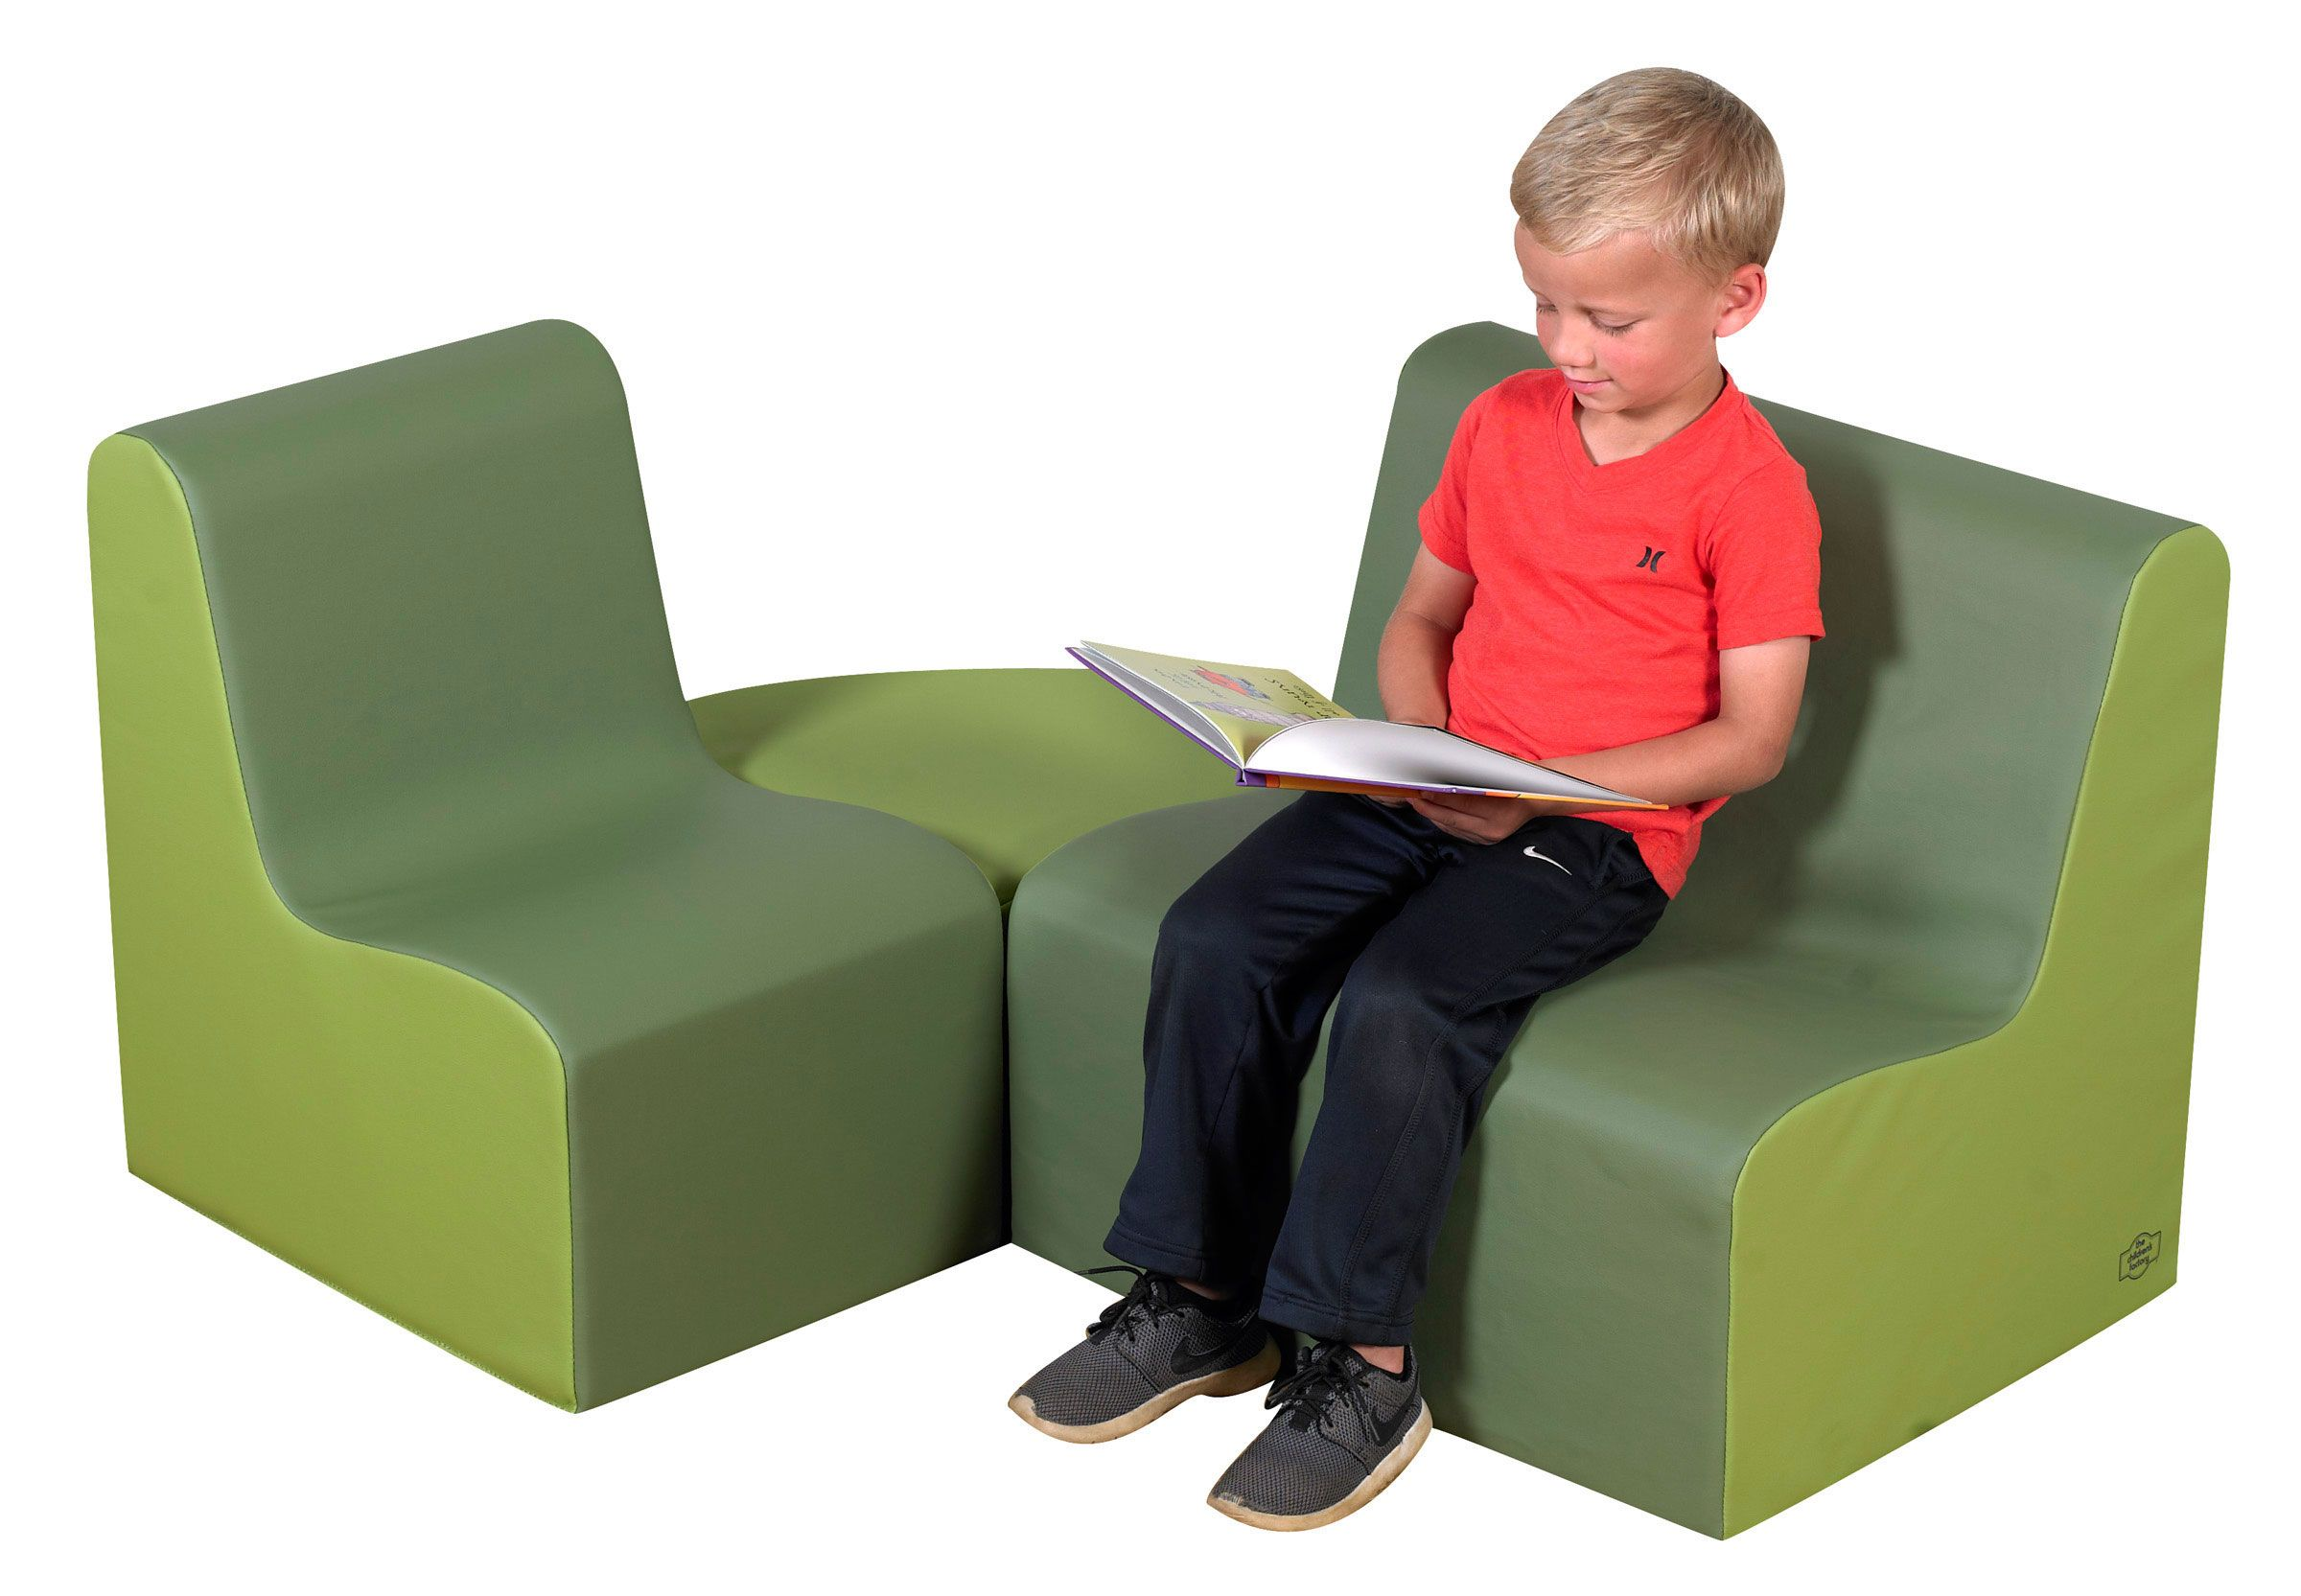 preschool chair. The Soft Touch Preschool Contour Furniture Set Is Comfortable For Kids And Perfect A Special Chair